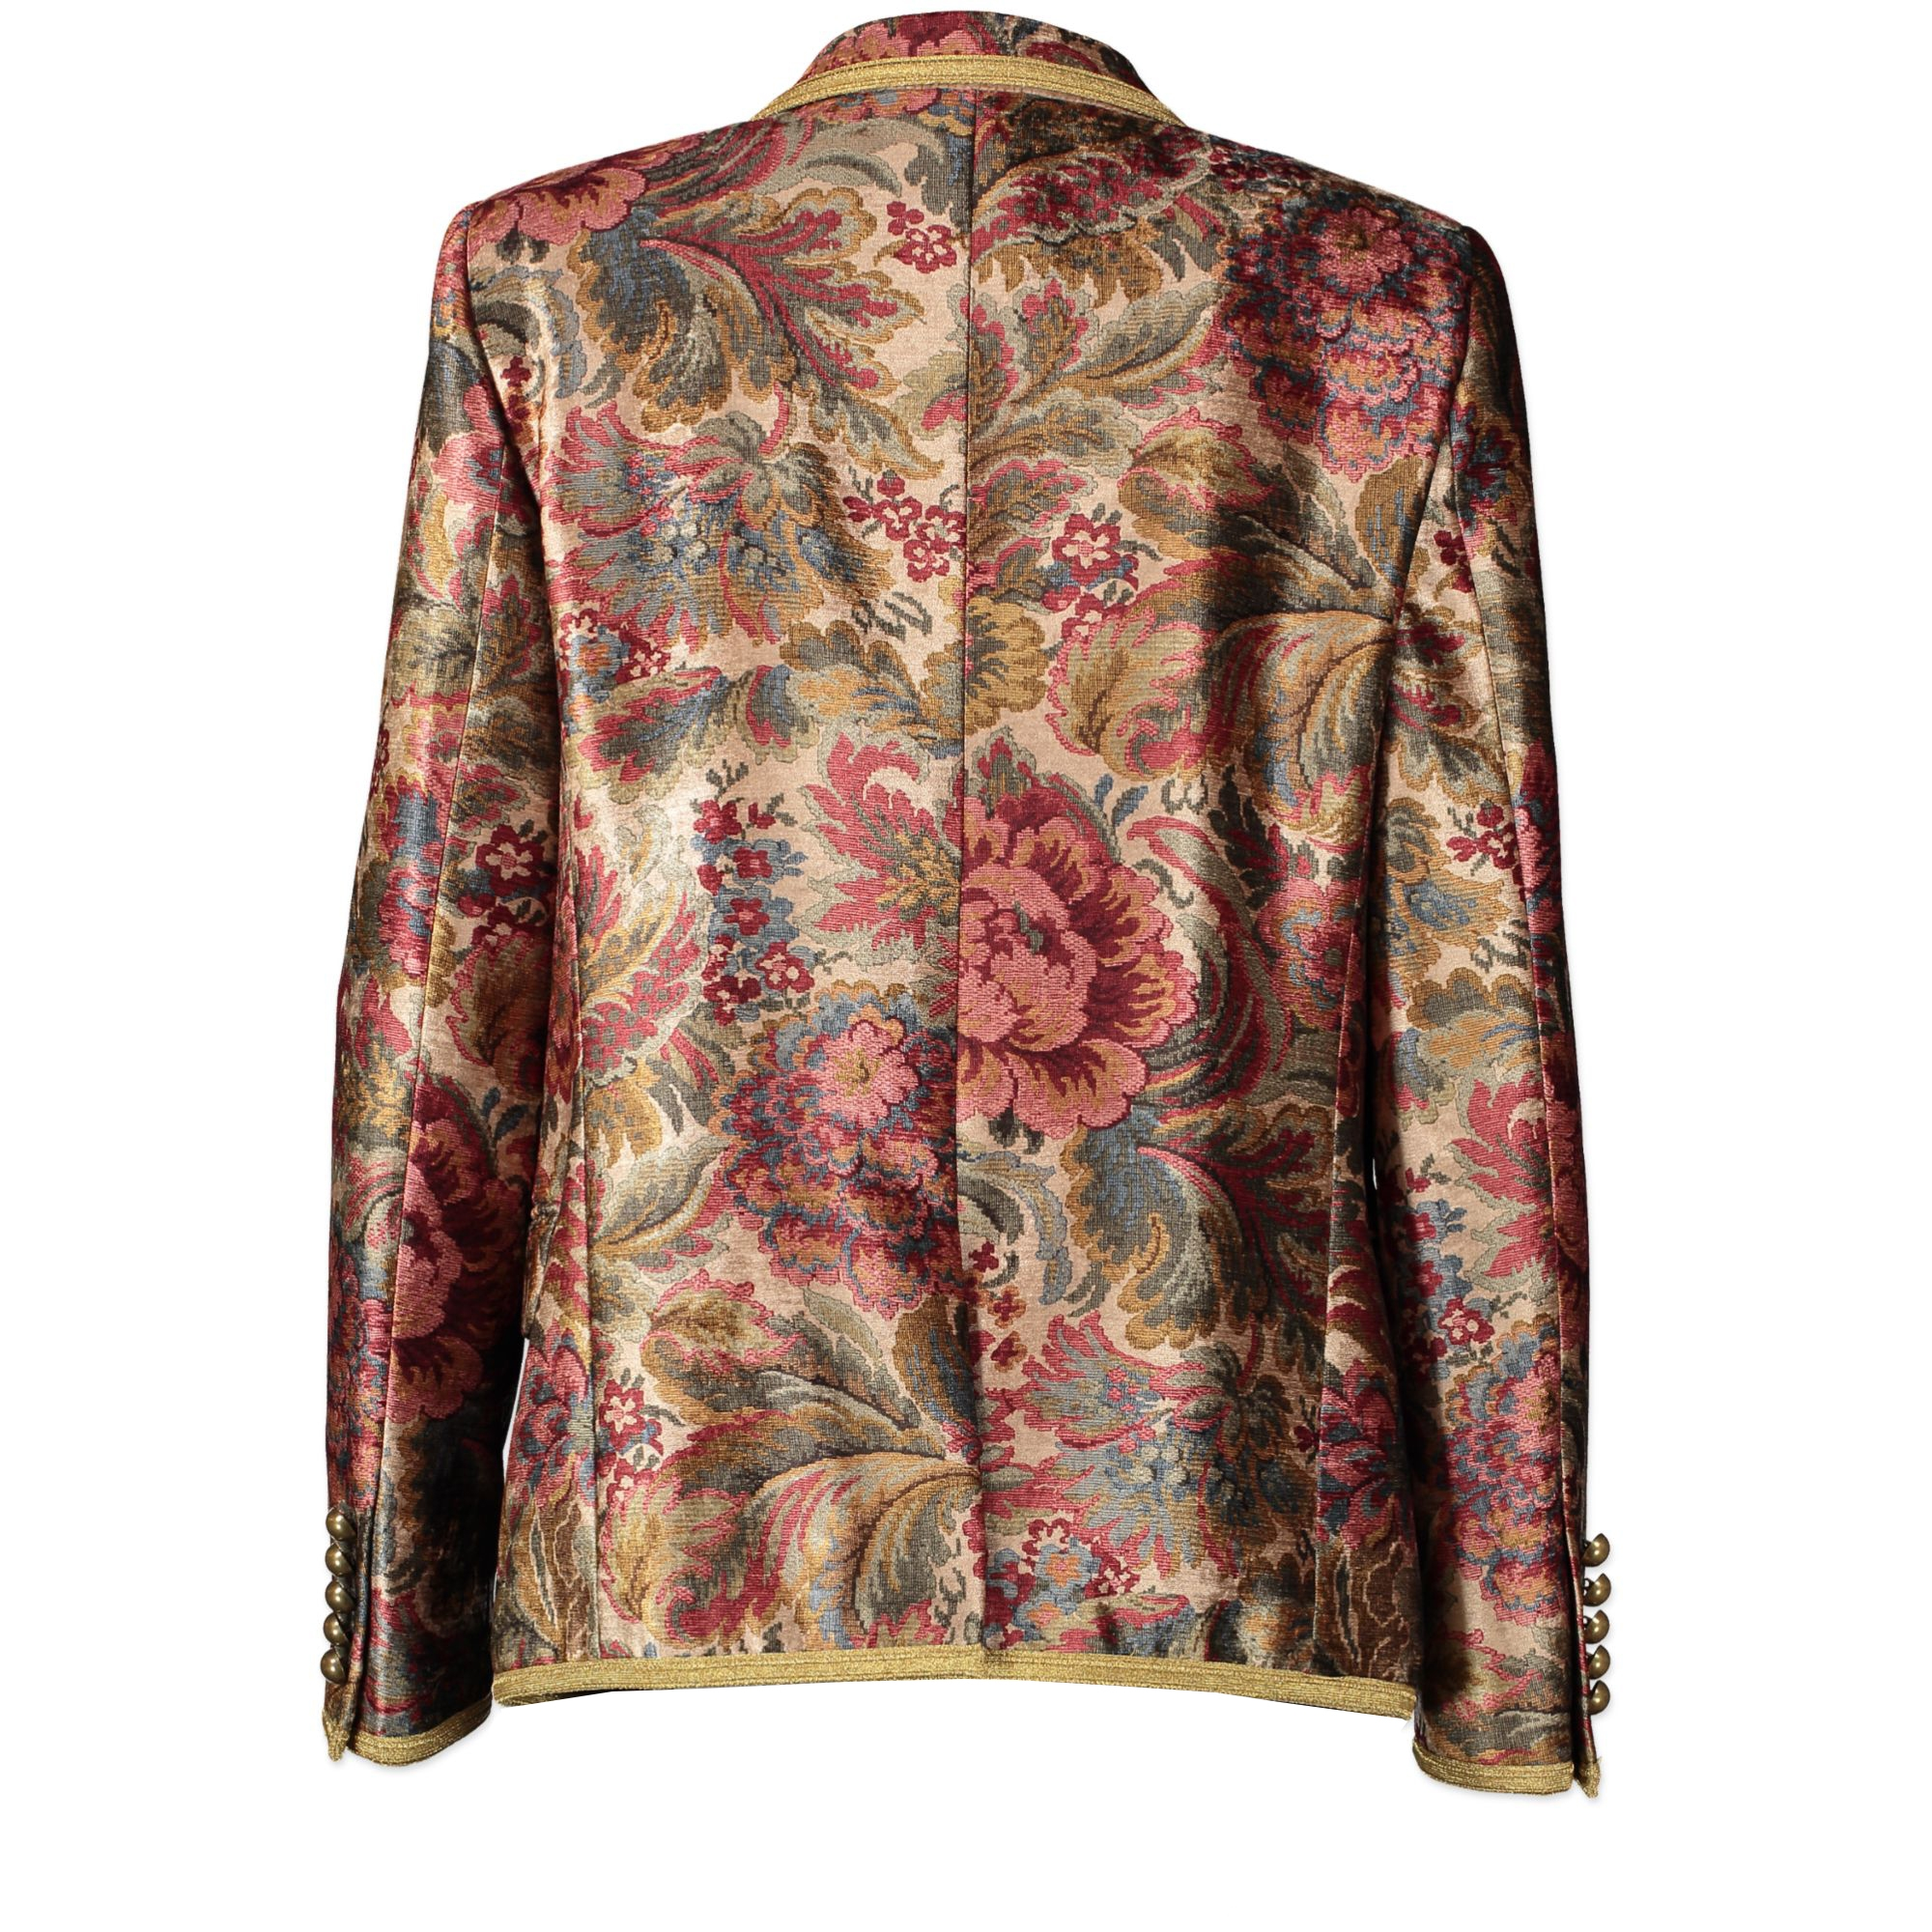 Saint Laurent Jacquard Floral Gold Trim Blazer